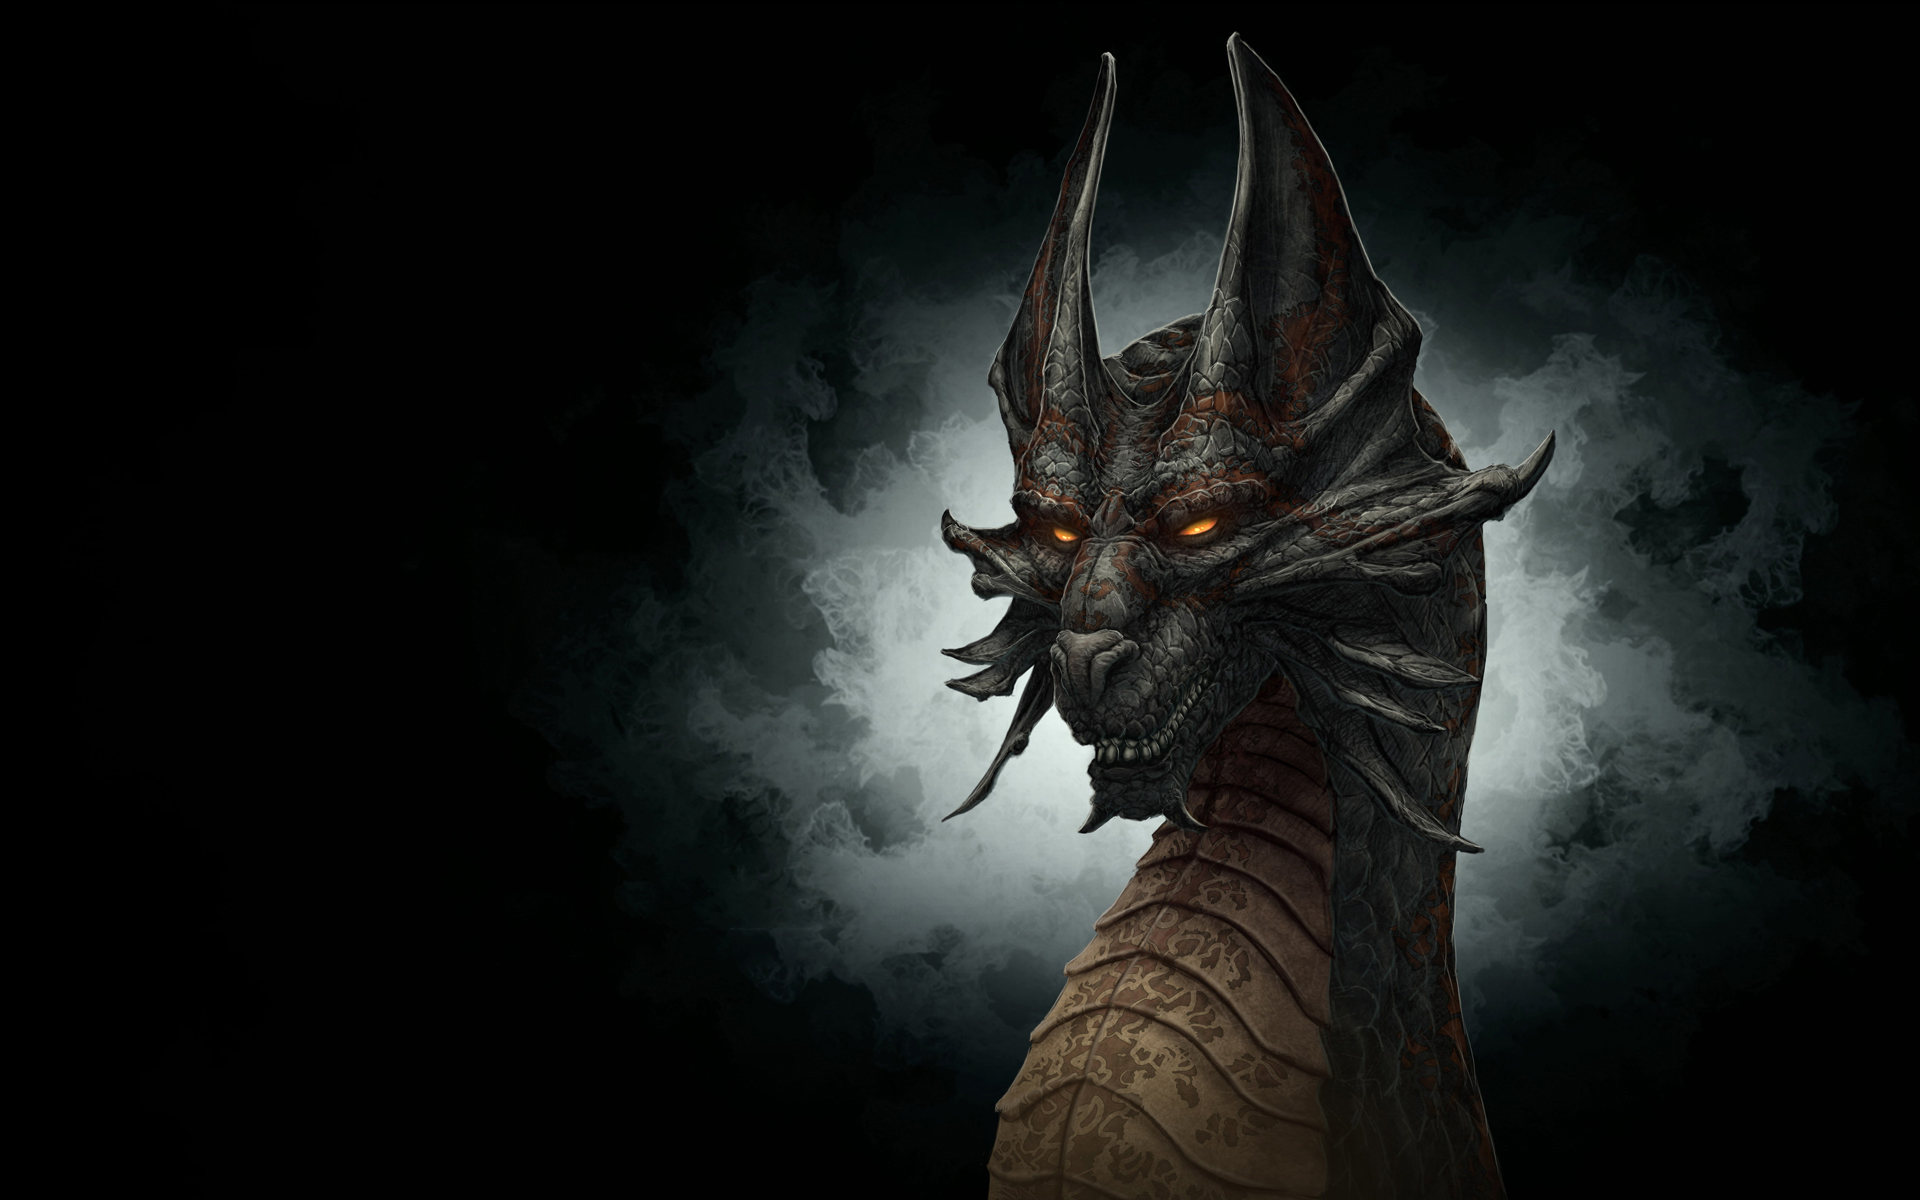 Top 50 HD Dragon Wallpapers, Images, Backgrounds, Desktop ...